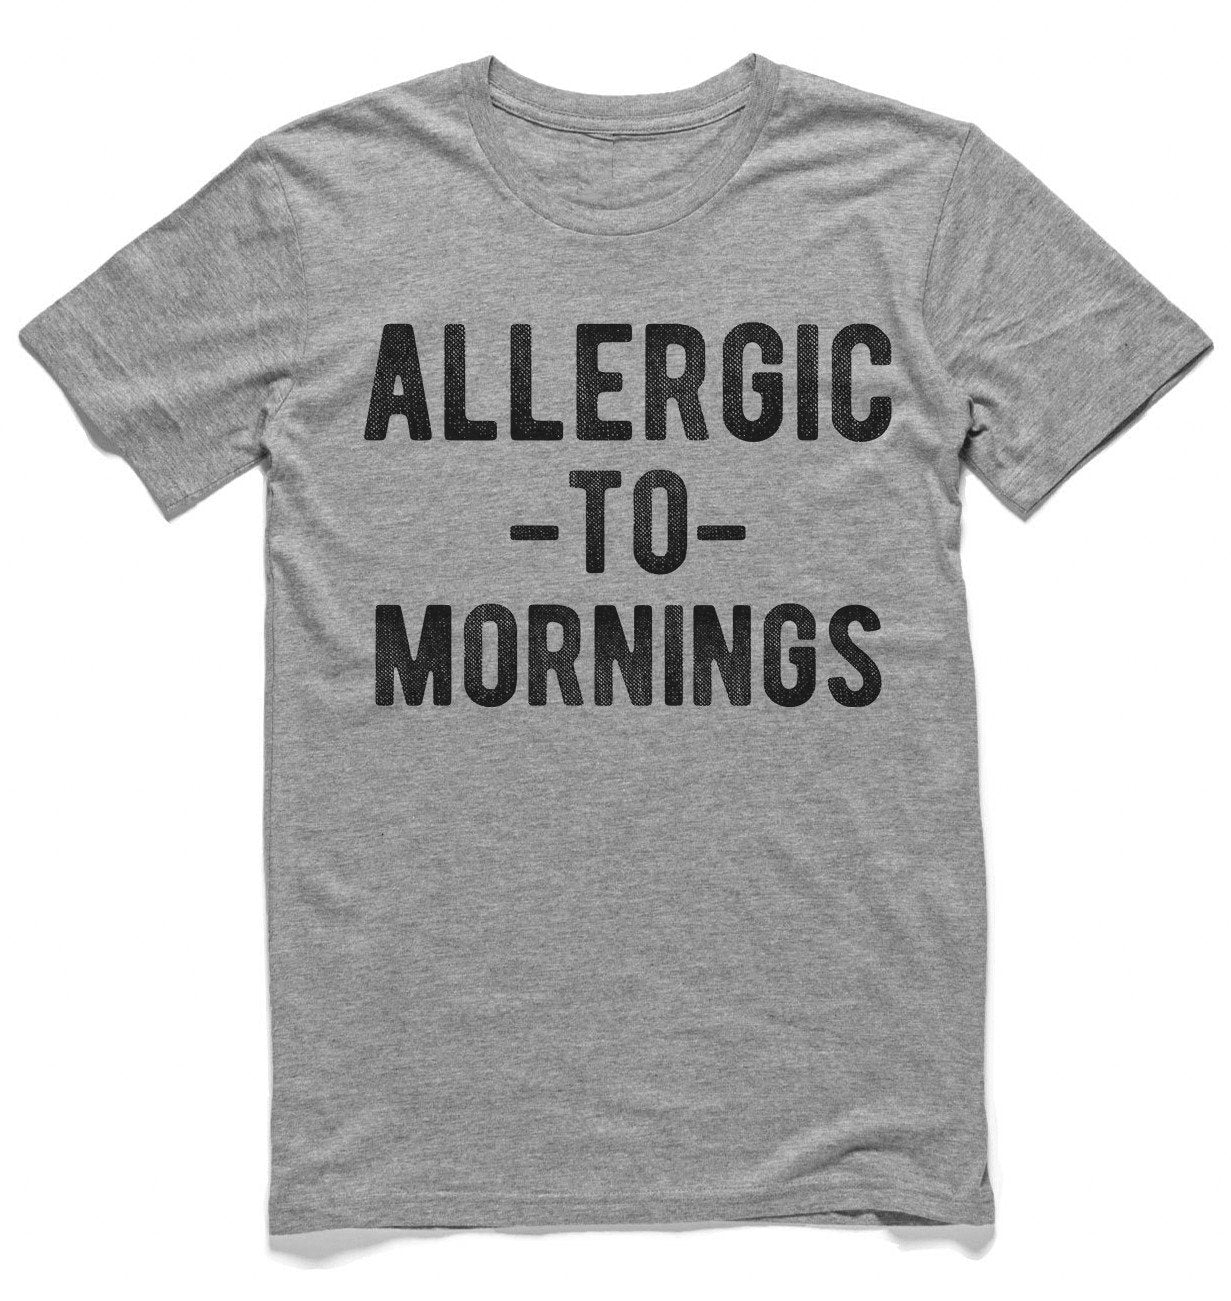 allergic -to- mornings t-shirt - Shirtoopia